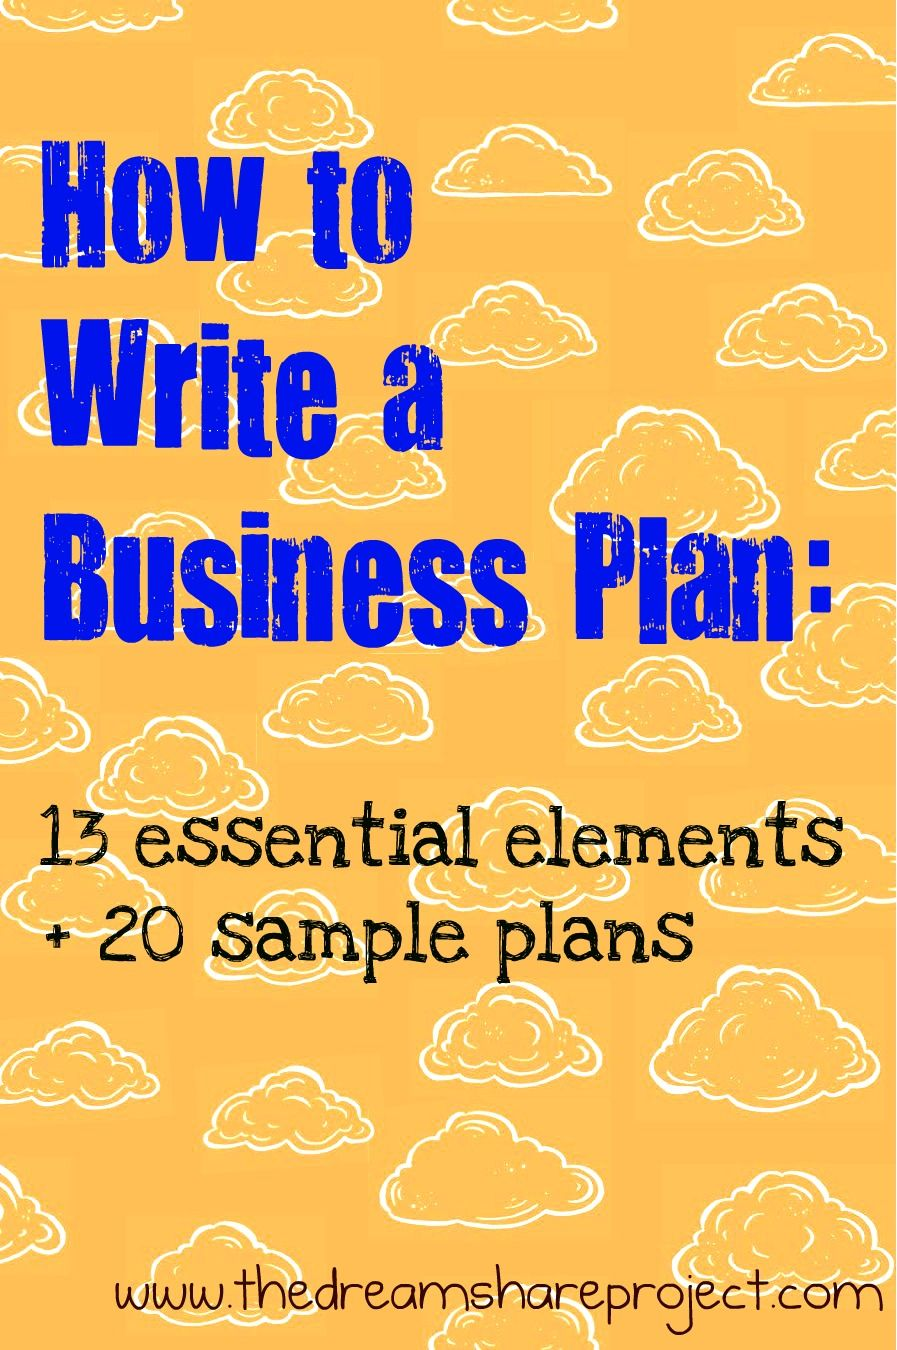 Free Business Case Study Examples Must See Business Plan - Business plan template examples